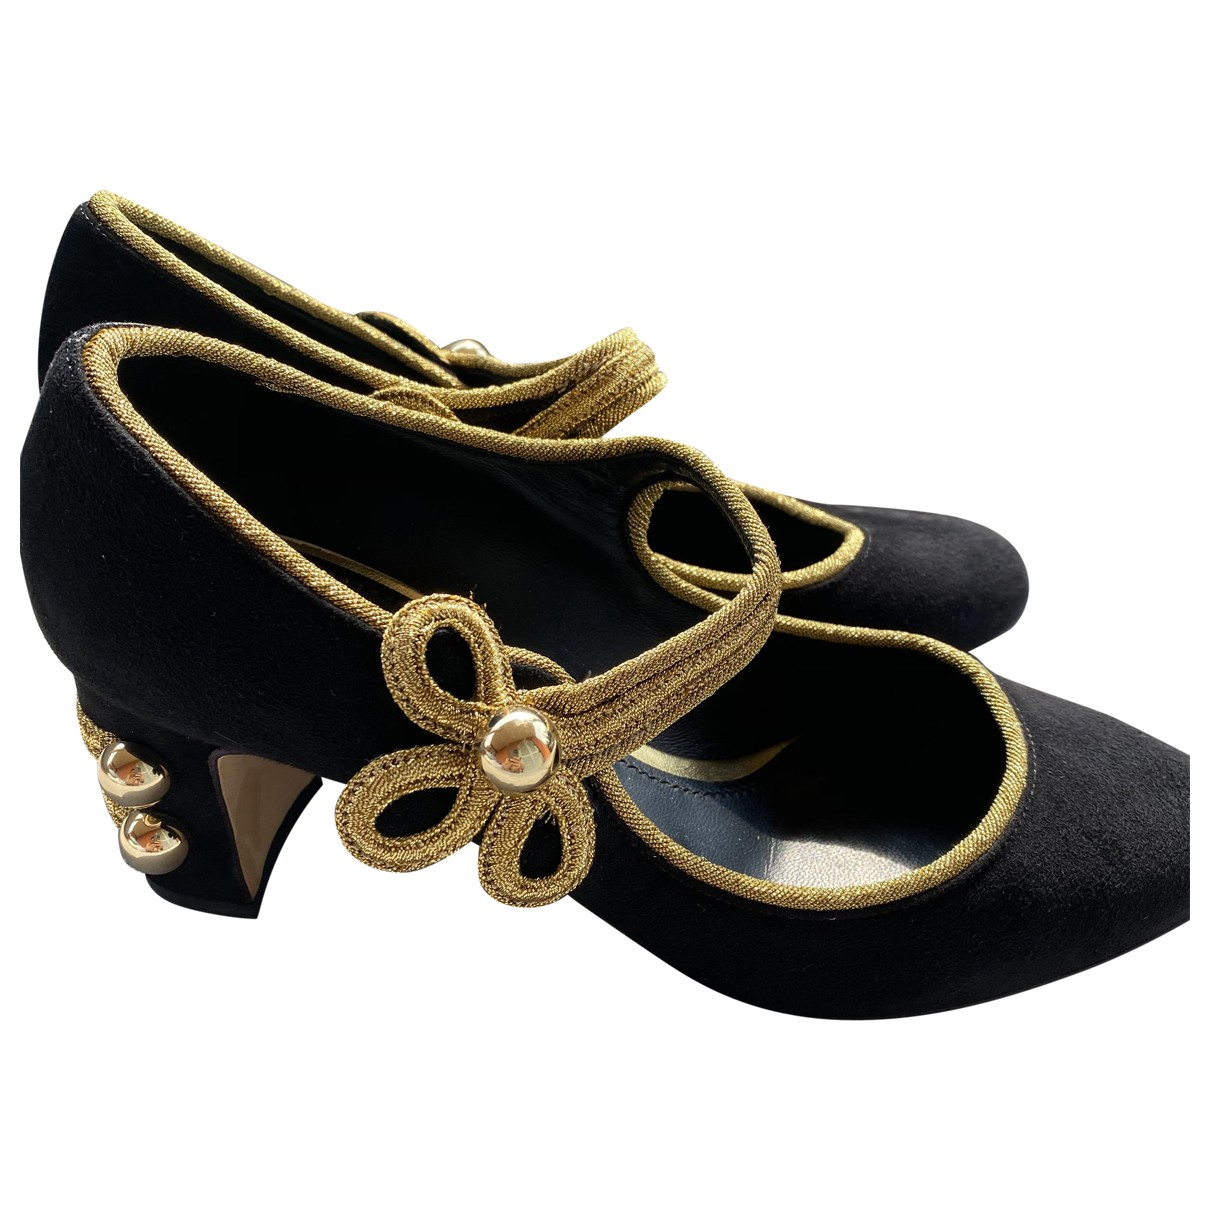 Dolce & Gabbana \N Black Suede Heels for Women 38 EU